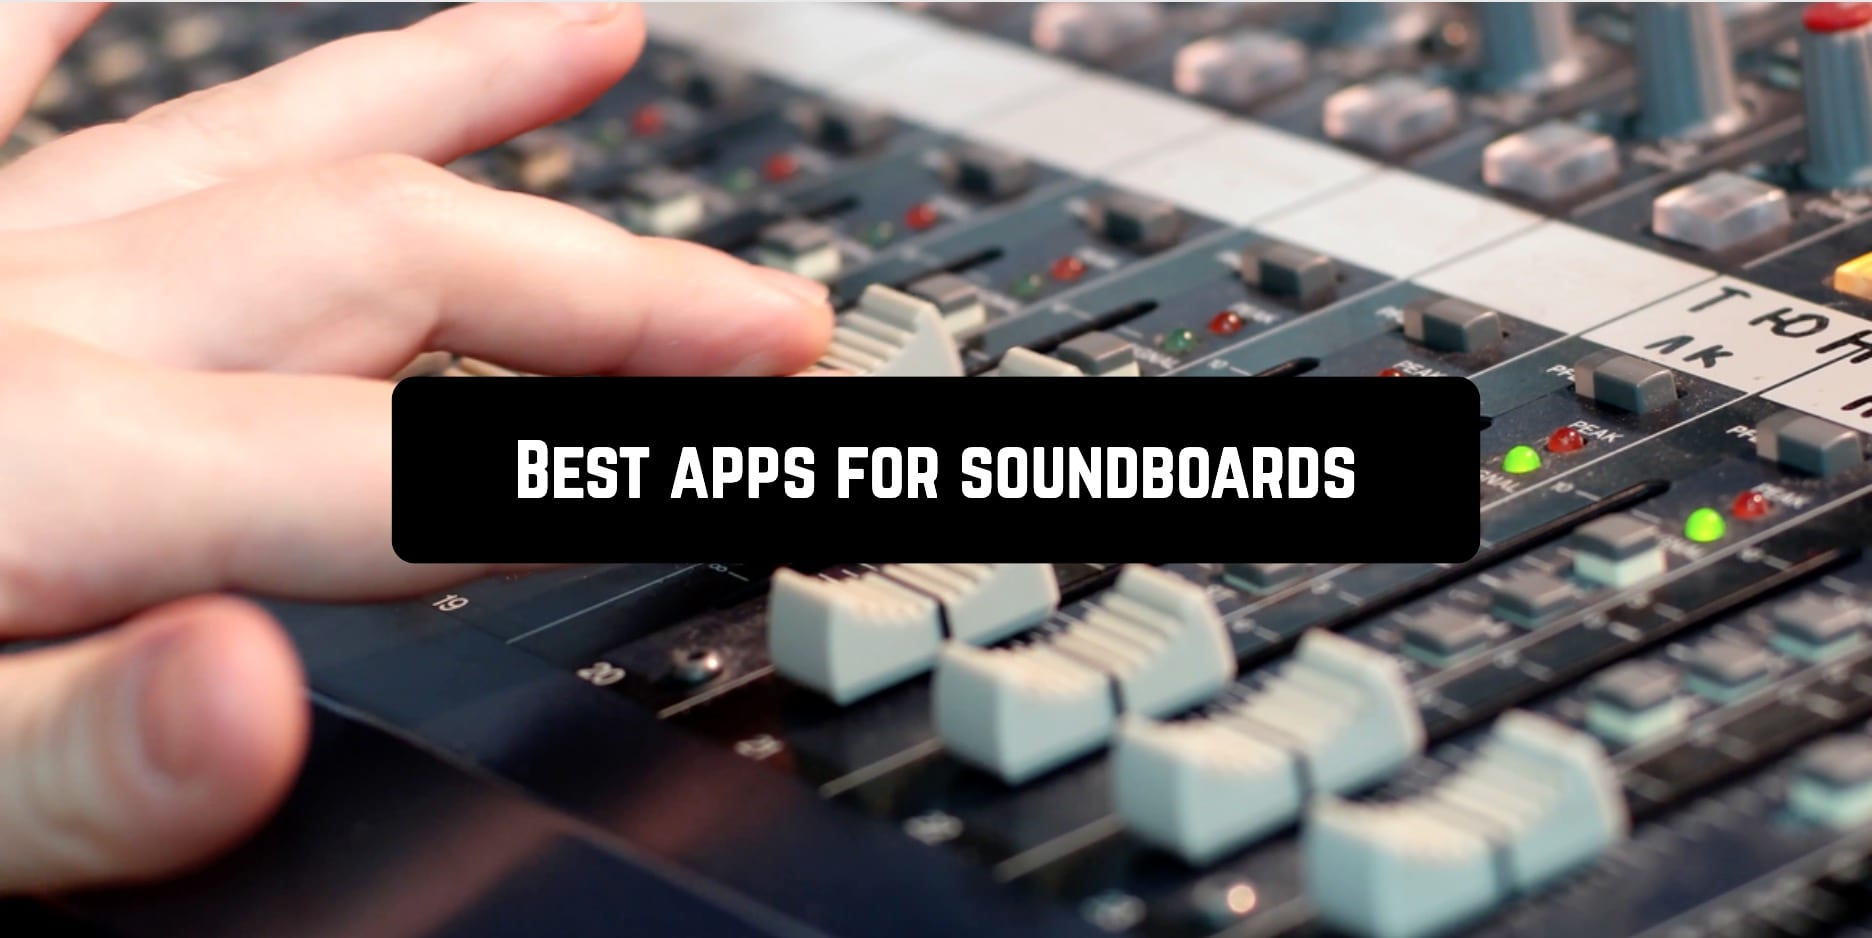 Best apps for soundboards